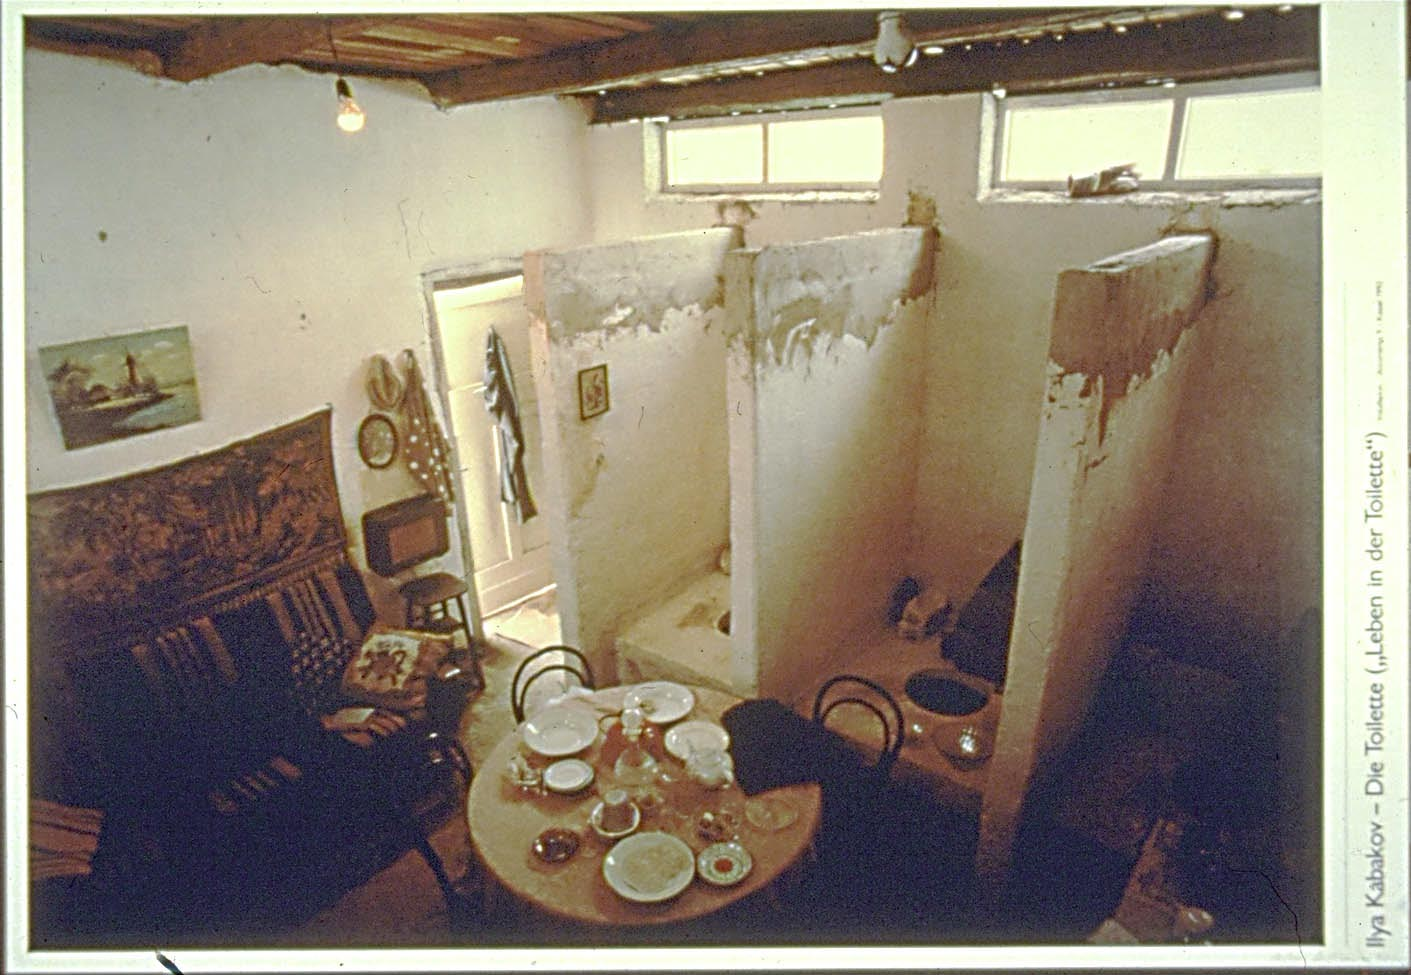 Another of Ilya and Emilia Kabakov's installations,  The Toilet, erected in 1992 for Documenta IX in Kassel, Germany. Photo Courtesy of the Columbia University.